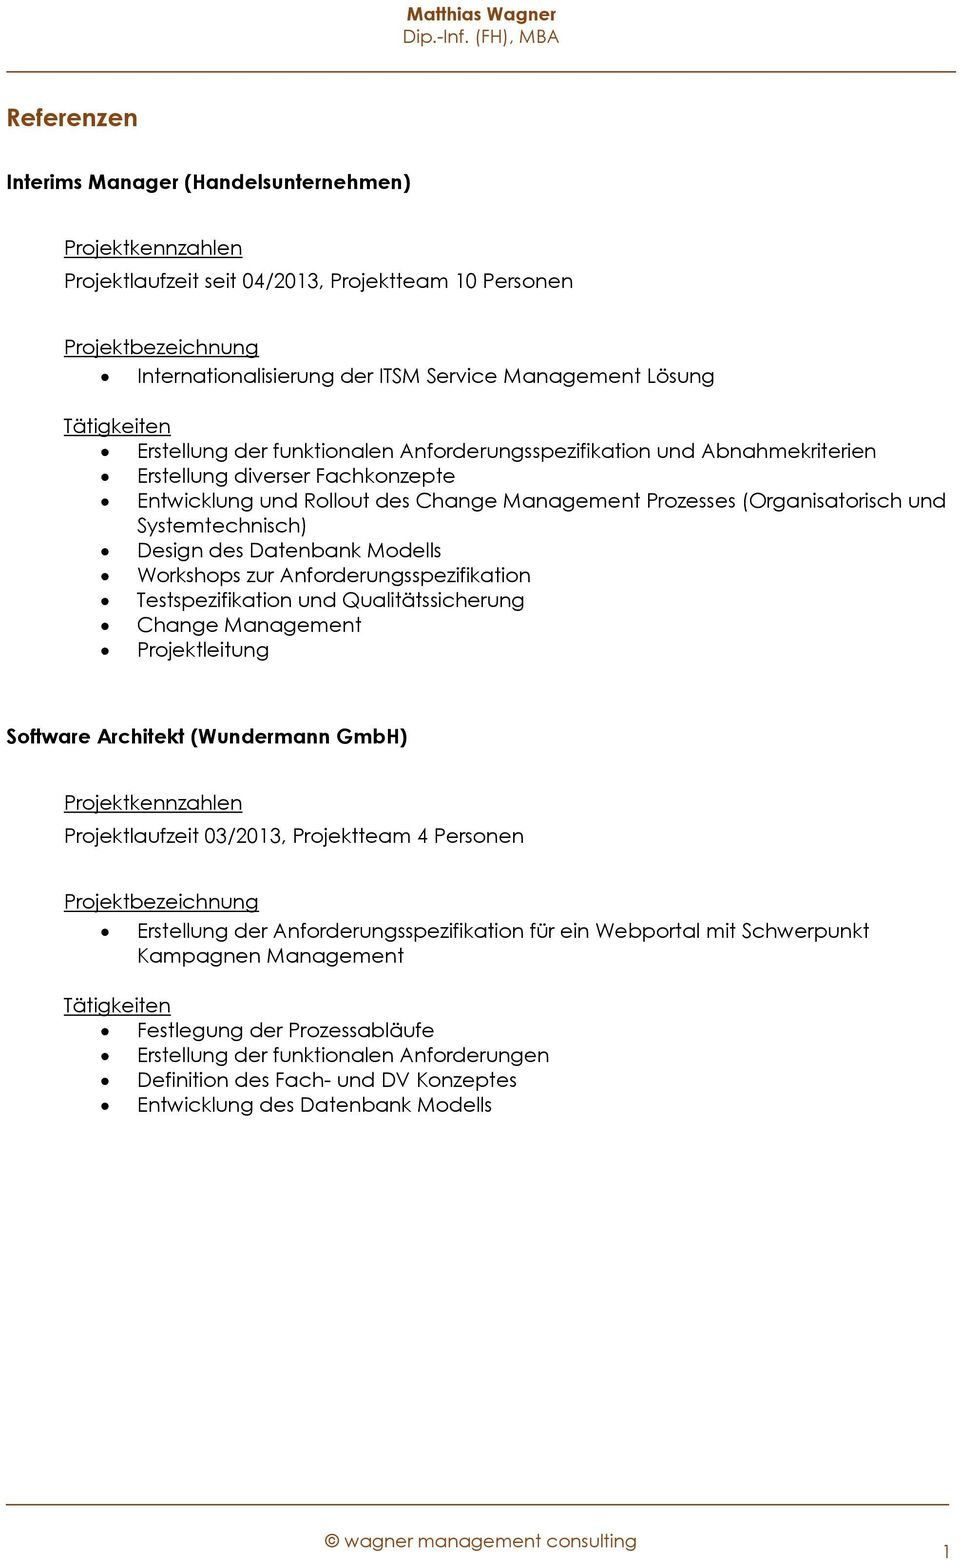 Modells Workshops zur Anforderungsspezifikation Testspezifikation und Qualitätssicherung Change Management Projektleitung Software Architekt (Wundermann GmbH) Projektlaufzeit 03/2013, Projektteam 4